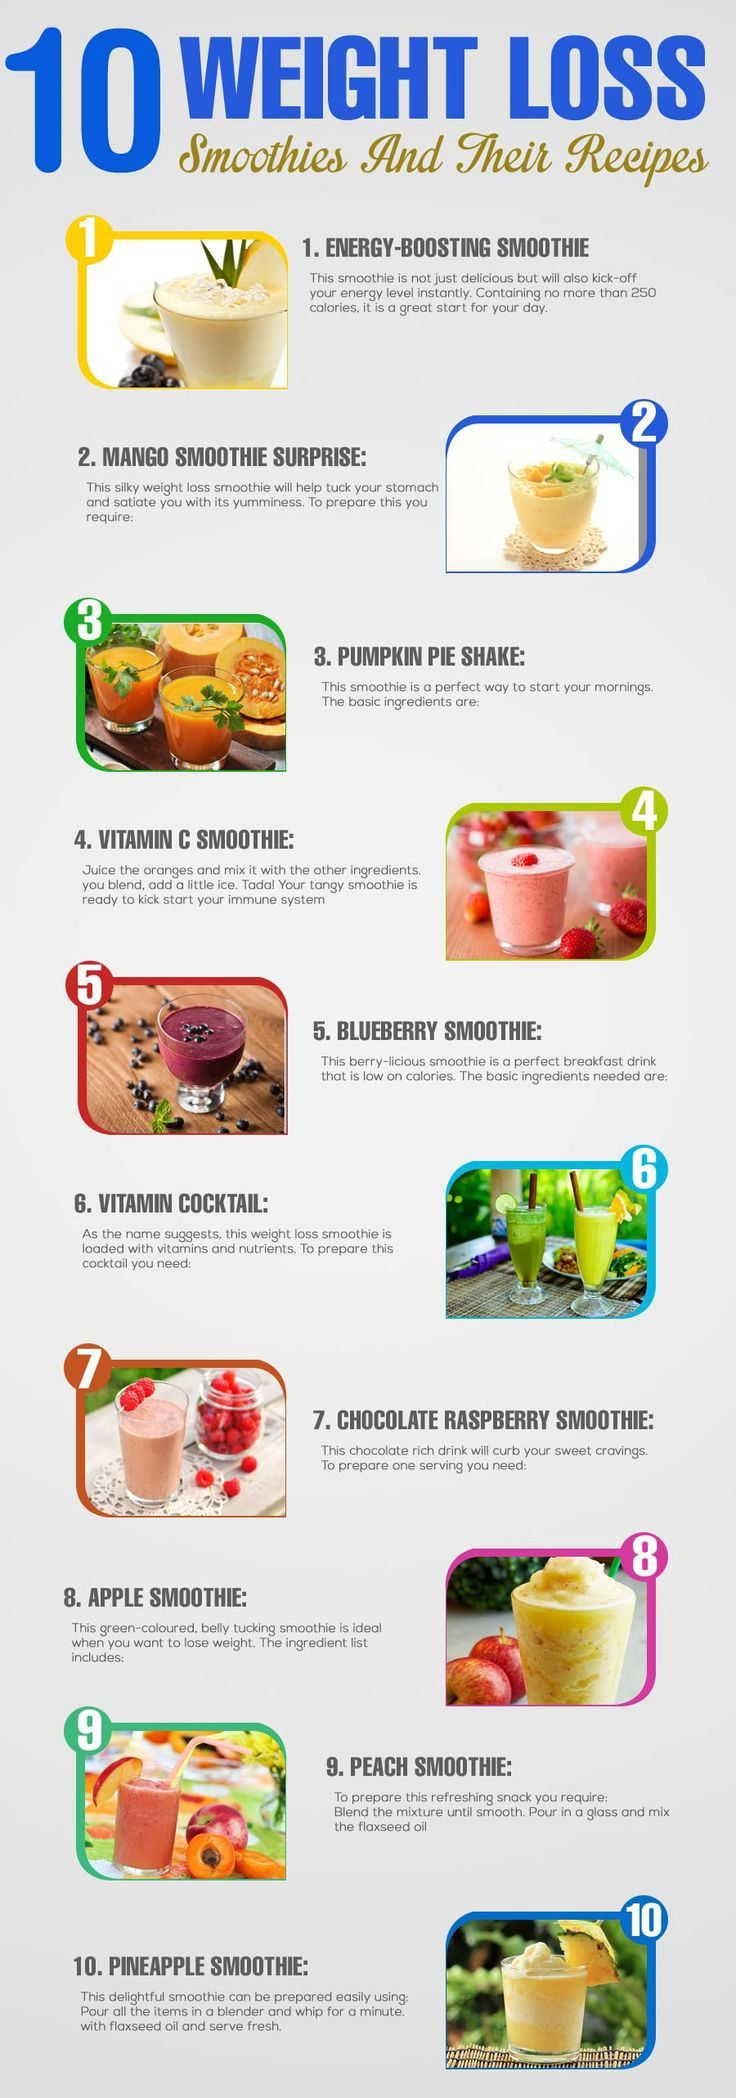 10 Weight Loss Smoothies And Their Recipes